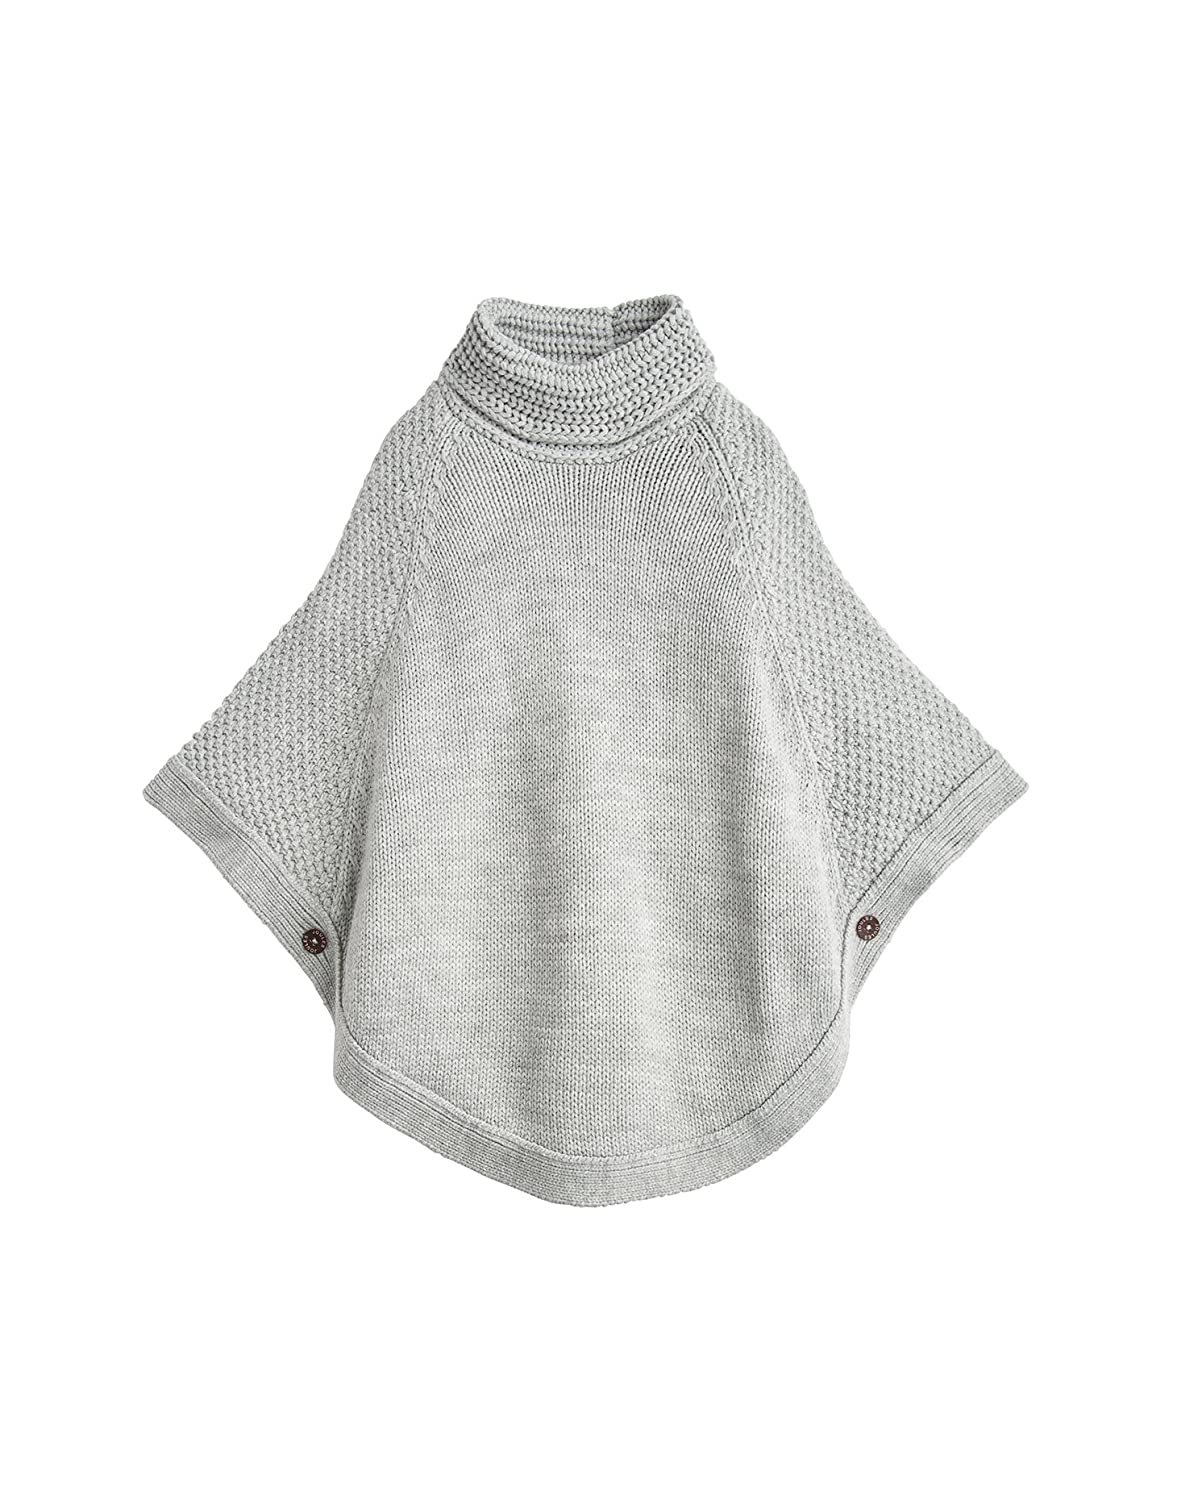 Joules Knitted Poncho - Grey Marl